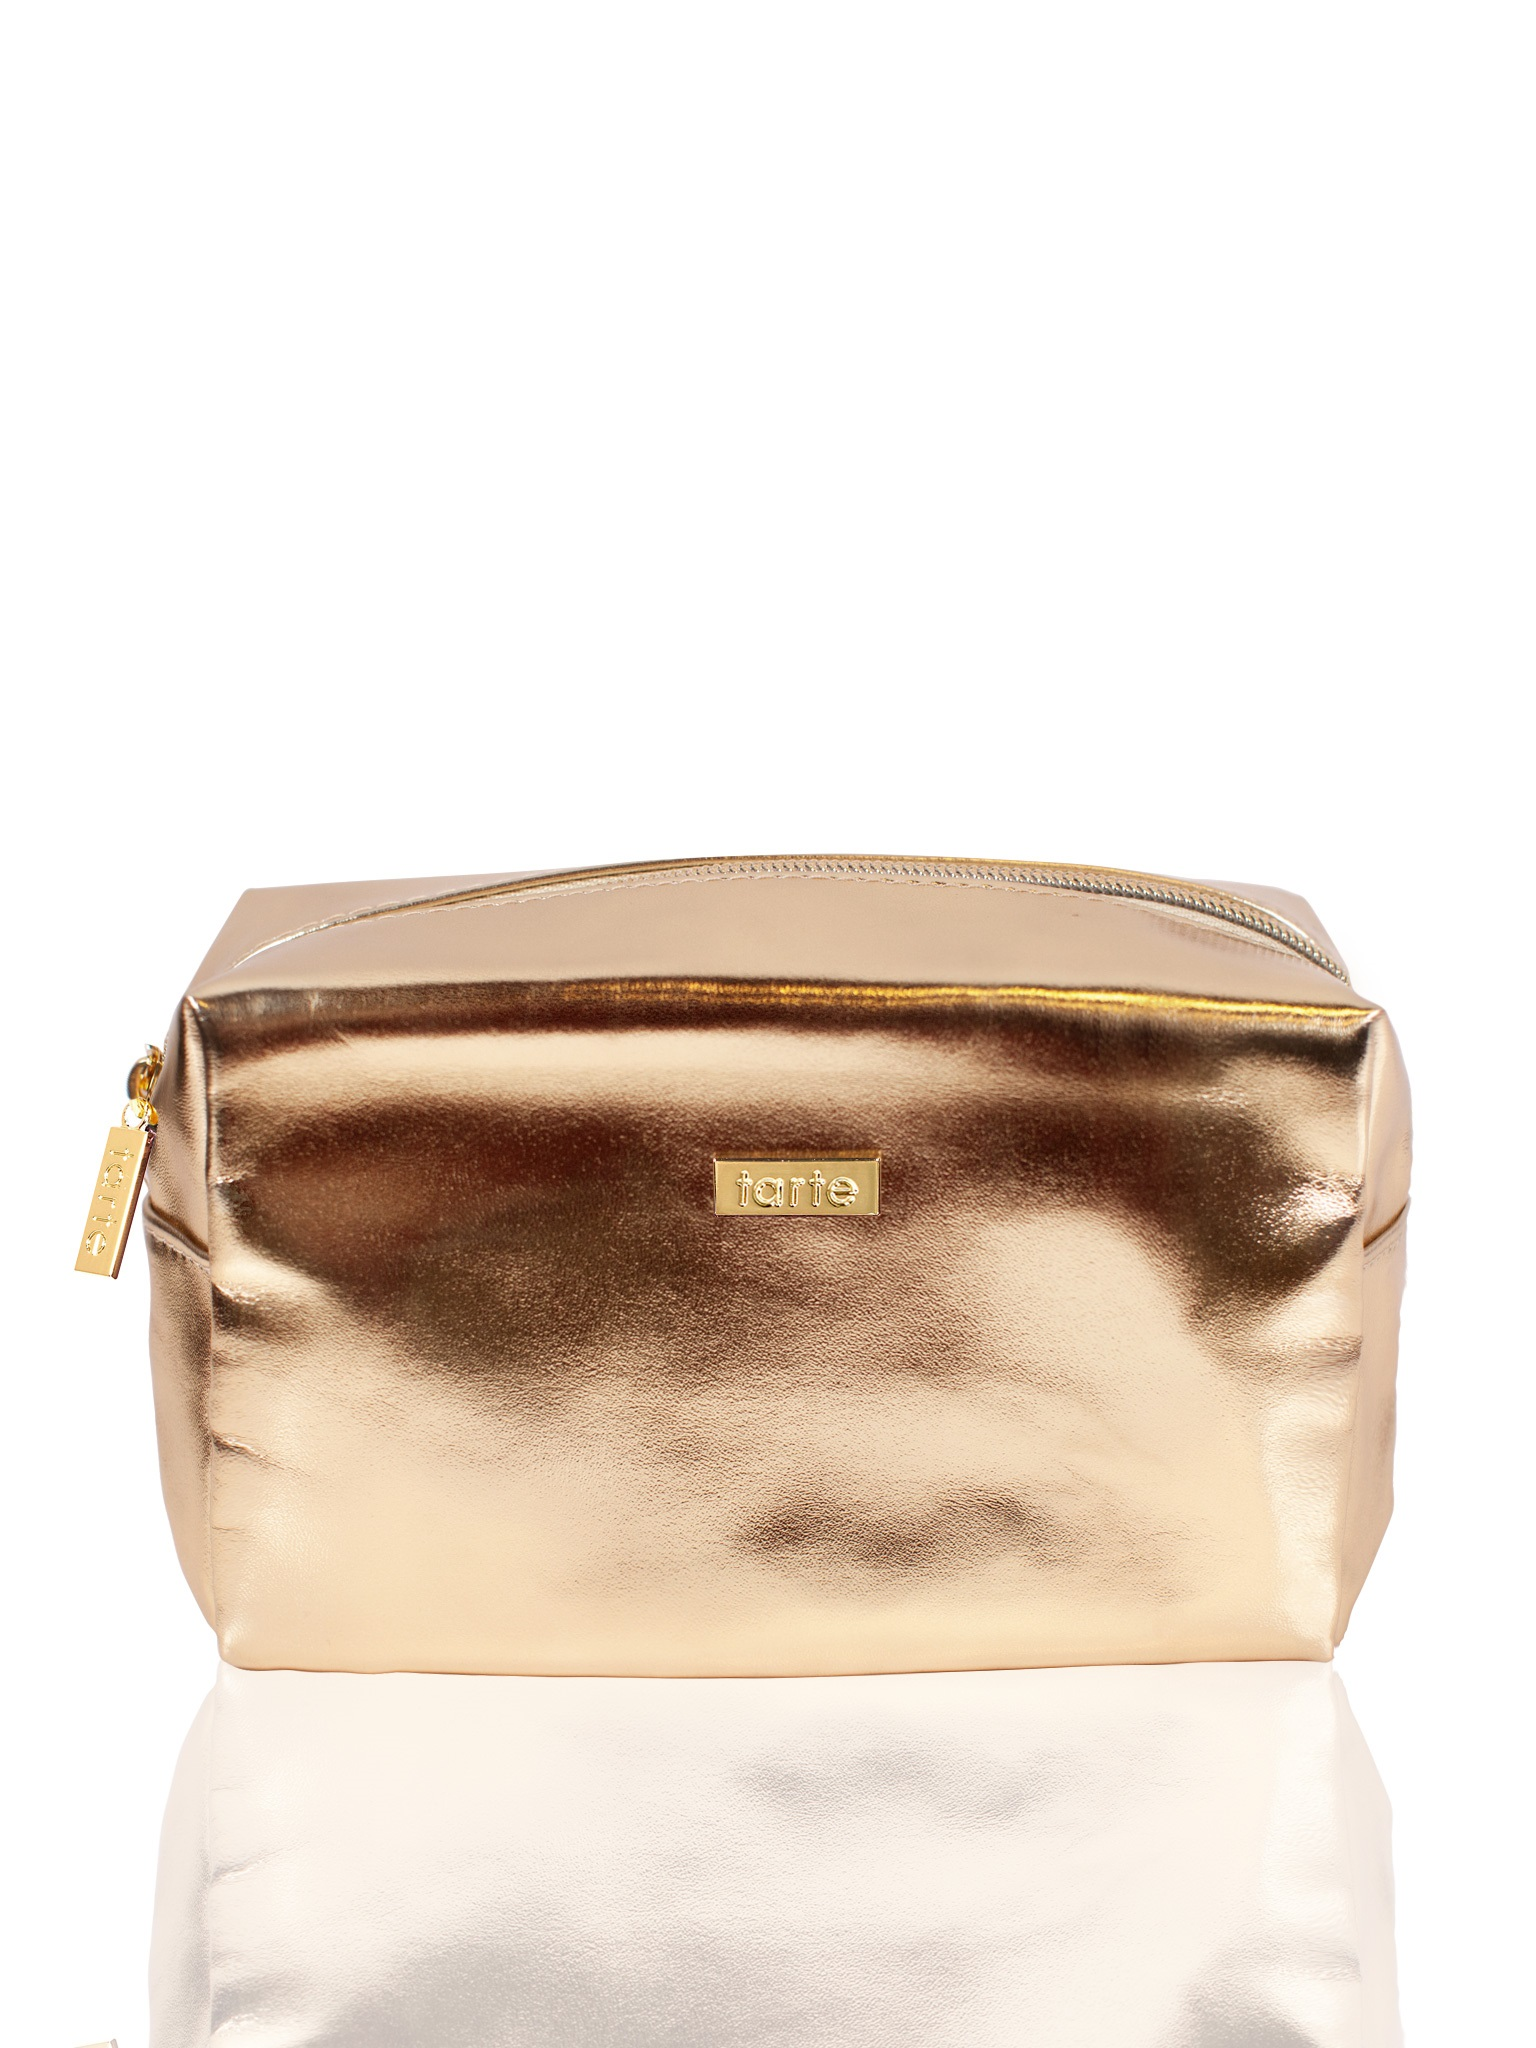 metallic bag in gold